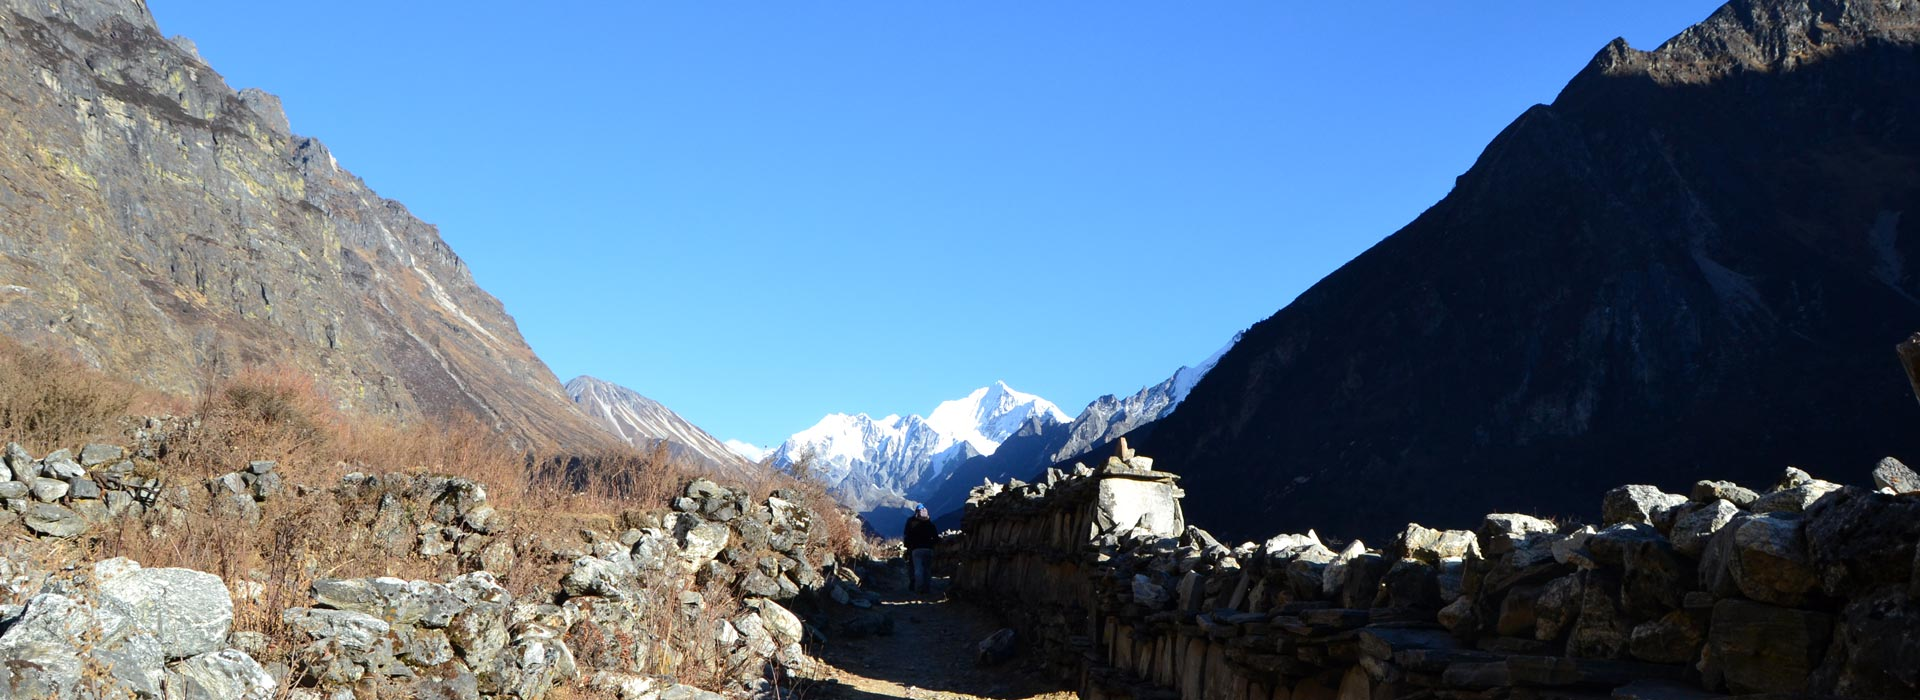 Why to trek Langtang Valley